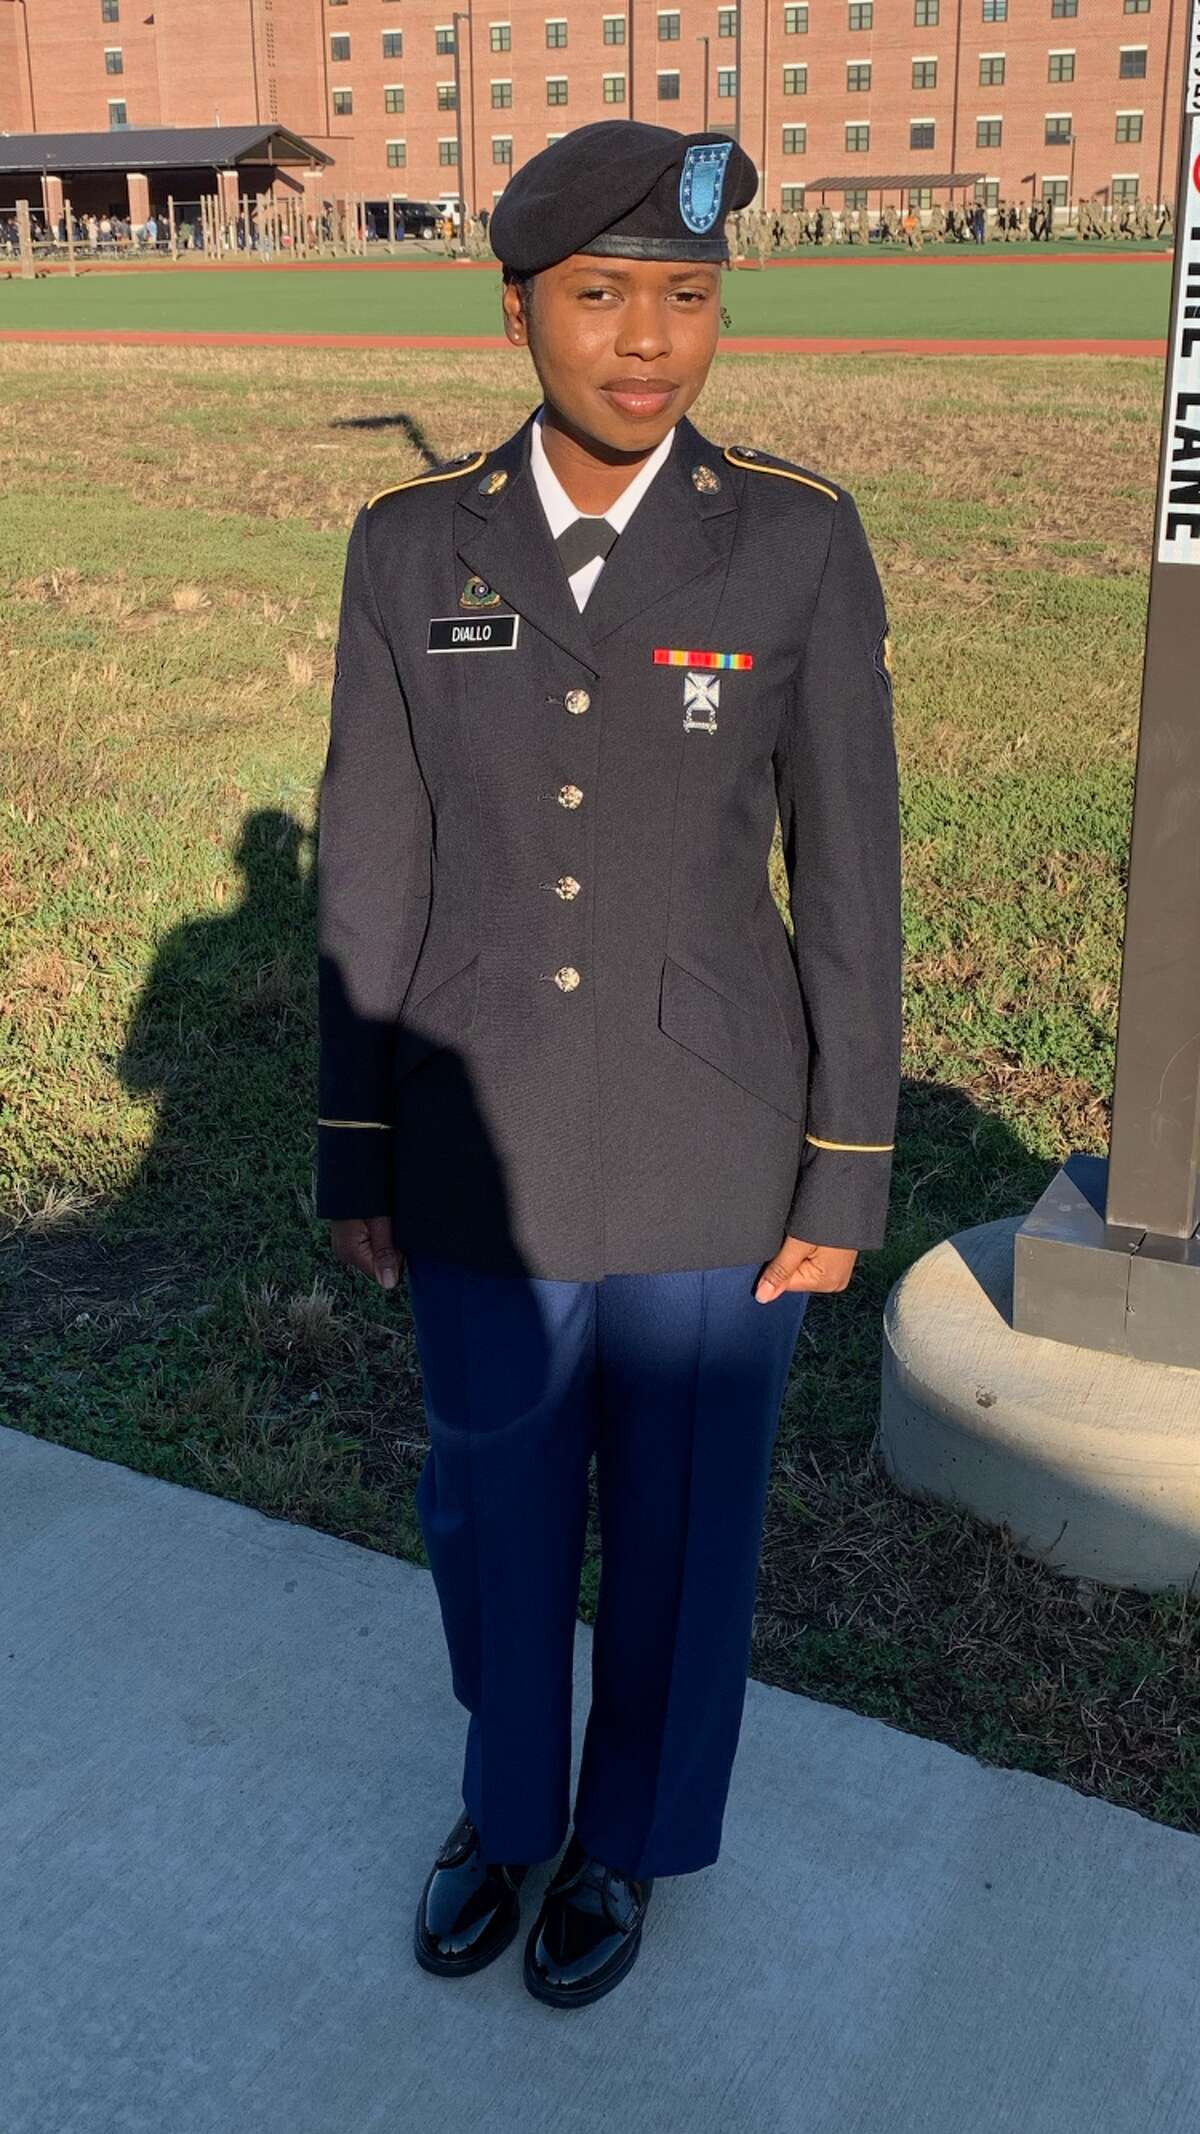 Gienabou Diallo, 25, is a Muslim and a member of the U.S. Army Reserves. She cares deeply about her faith and her sacred vow to protect American lives. She says President Donald Trump's and Attorney General William Barr's talk of using the military against peaceful protesters of George Floyd's death conflict.